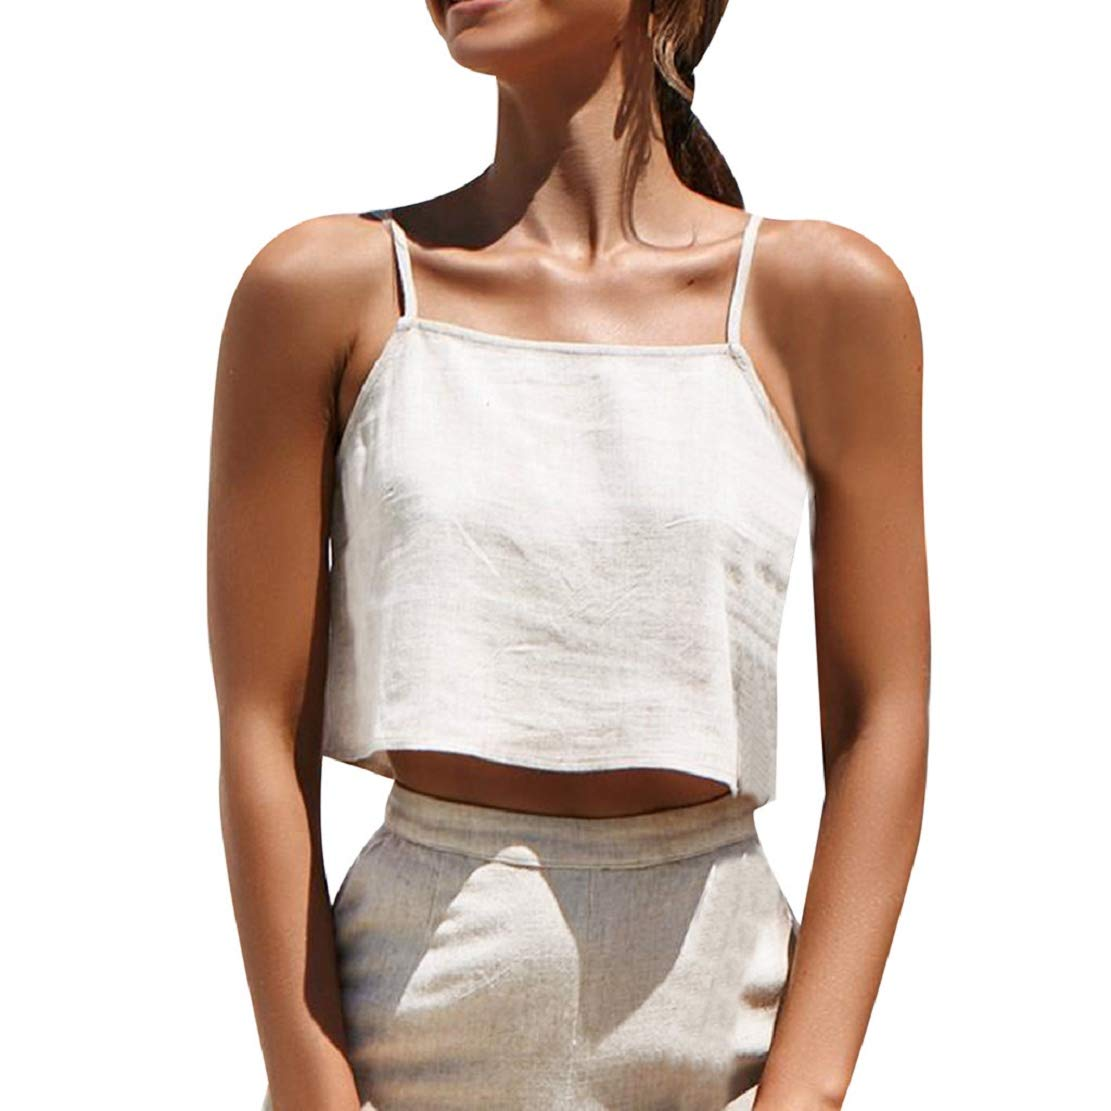 Women Pure Camis Tops Summer Casual Bandage Zip Crop Tank Tops Camisole by Lowprofile White